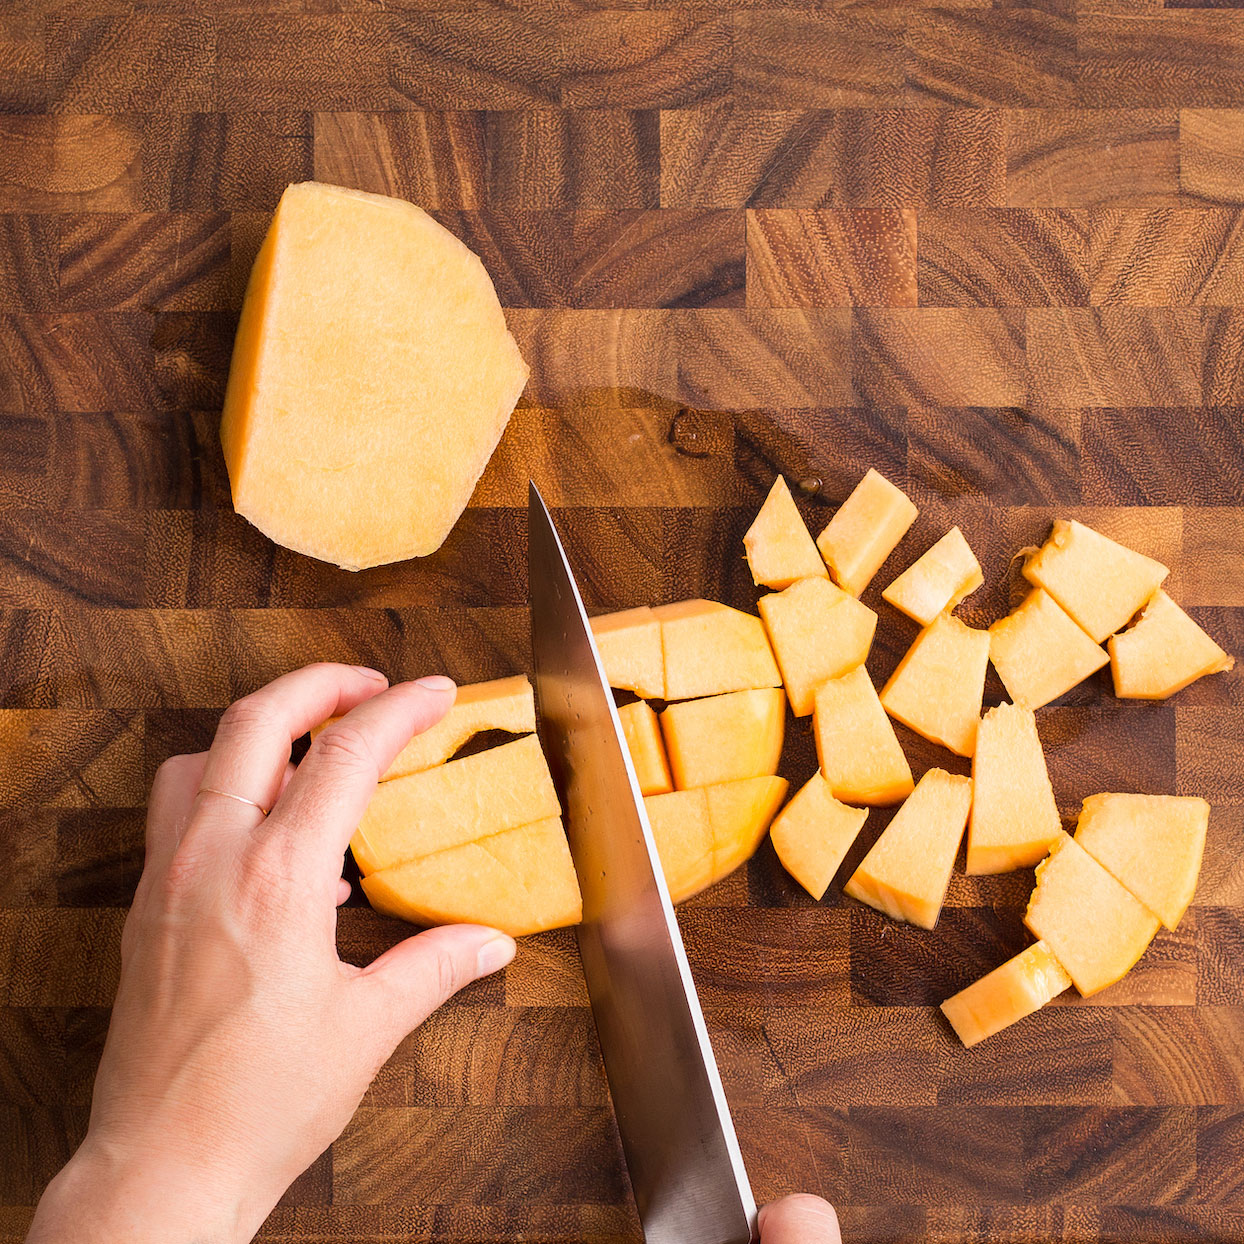 Here's the Best Way to Cut a Cantaloupe